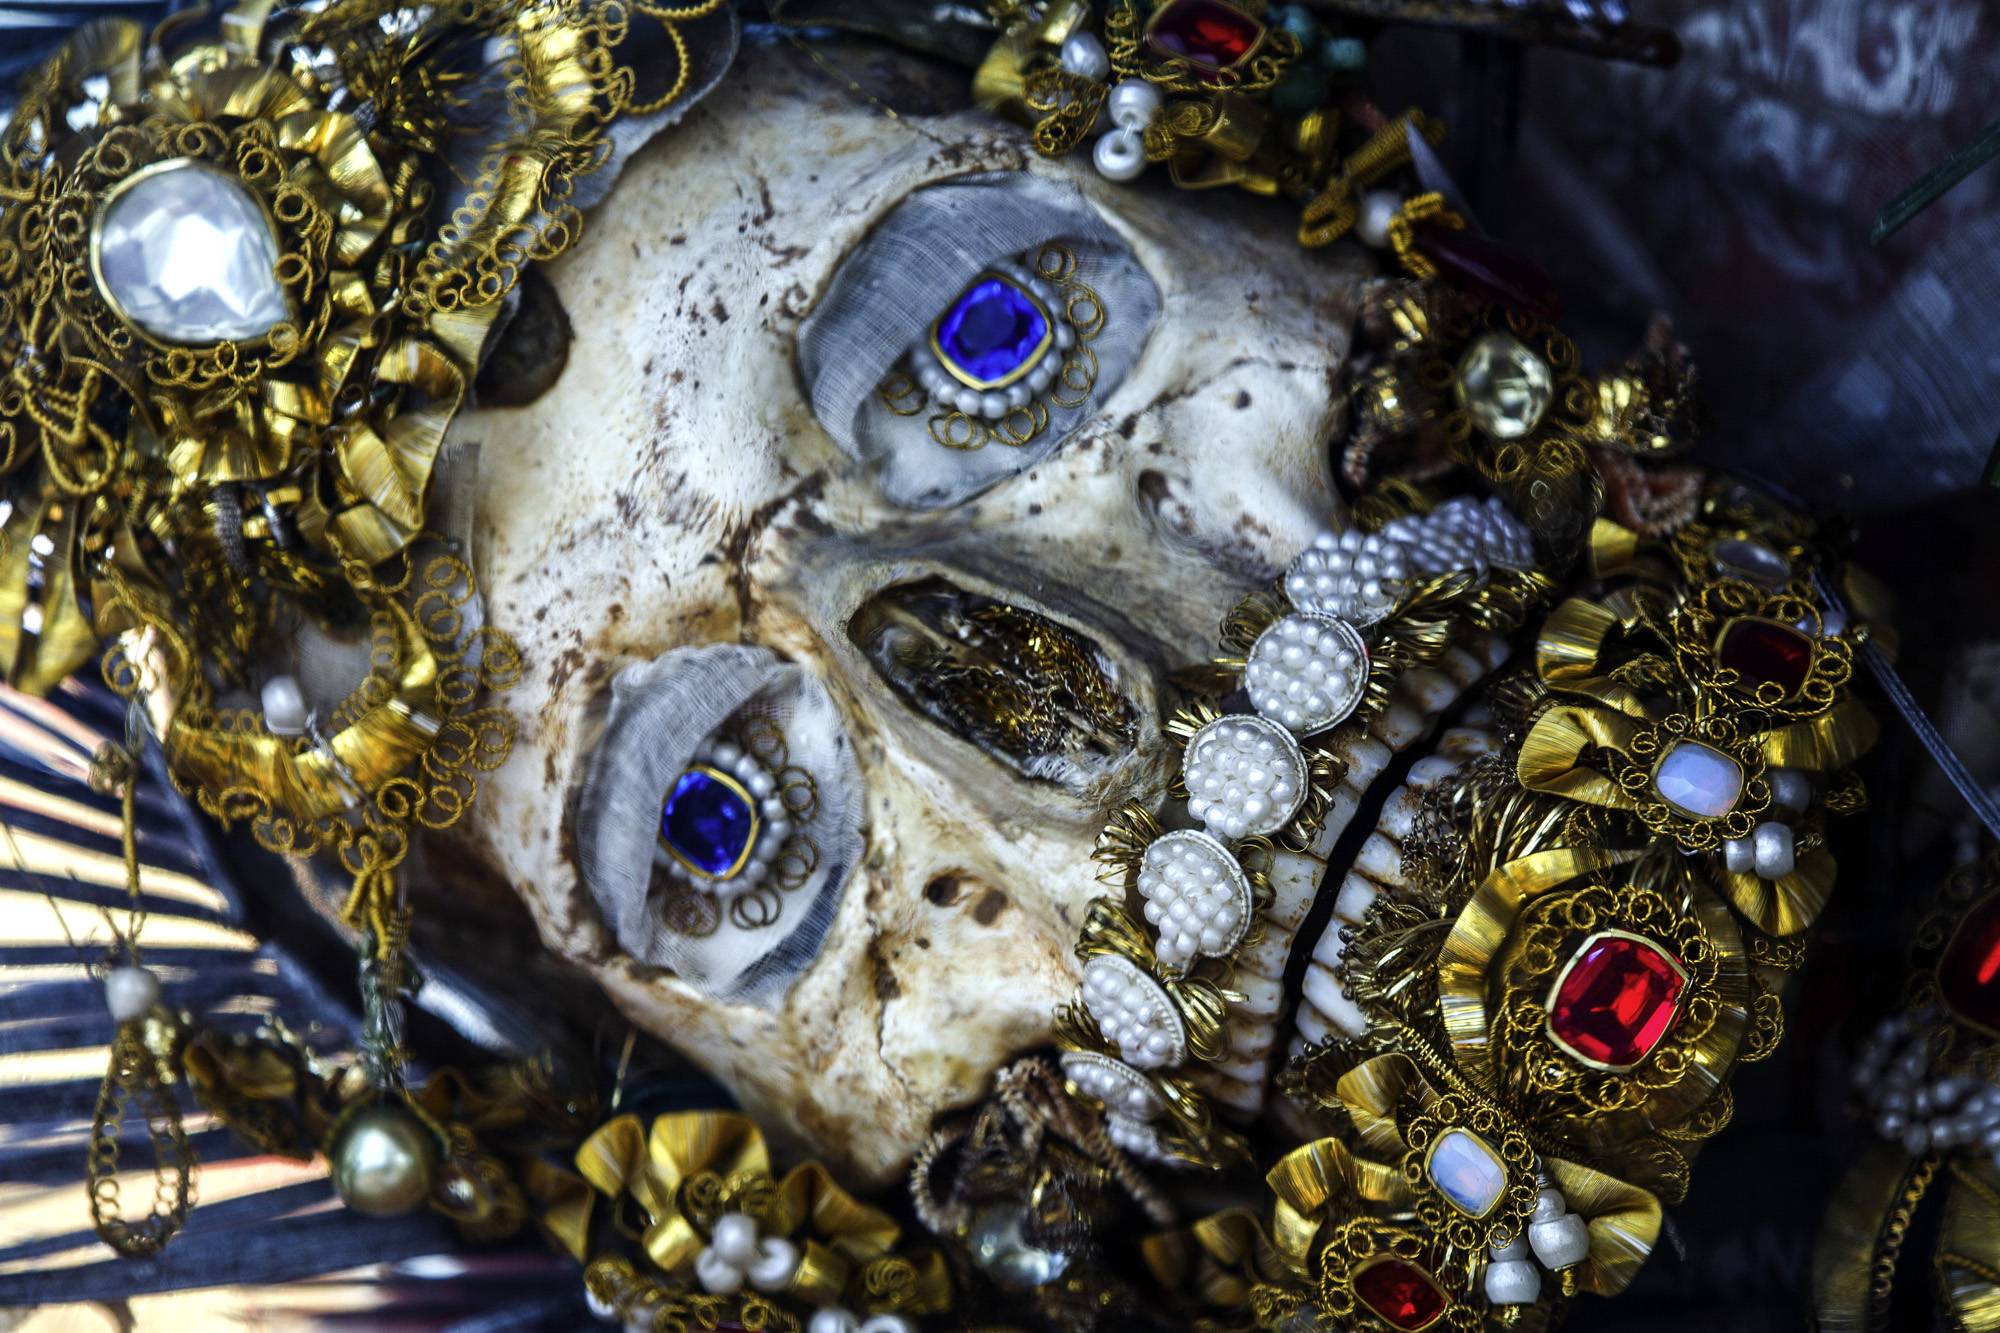 - Weyarn, Germany, St. Valerius skull detail. The elaborately decorated relic of the presumed martyr from the Roman Catacombs arrived in the town's monastery church in the early 18th century. An entire -